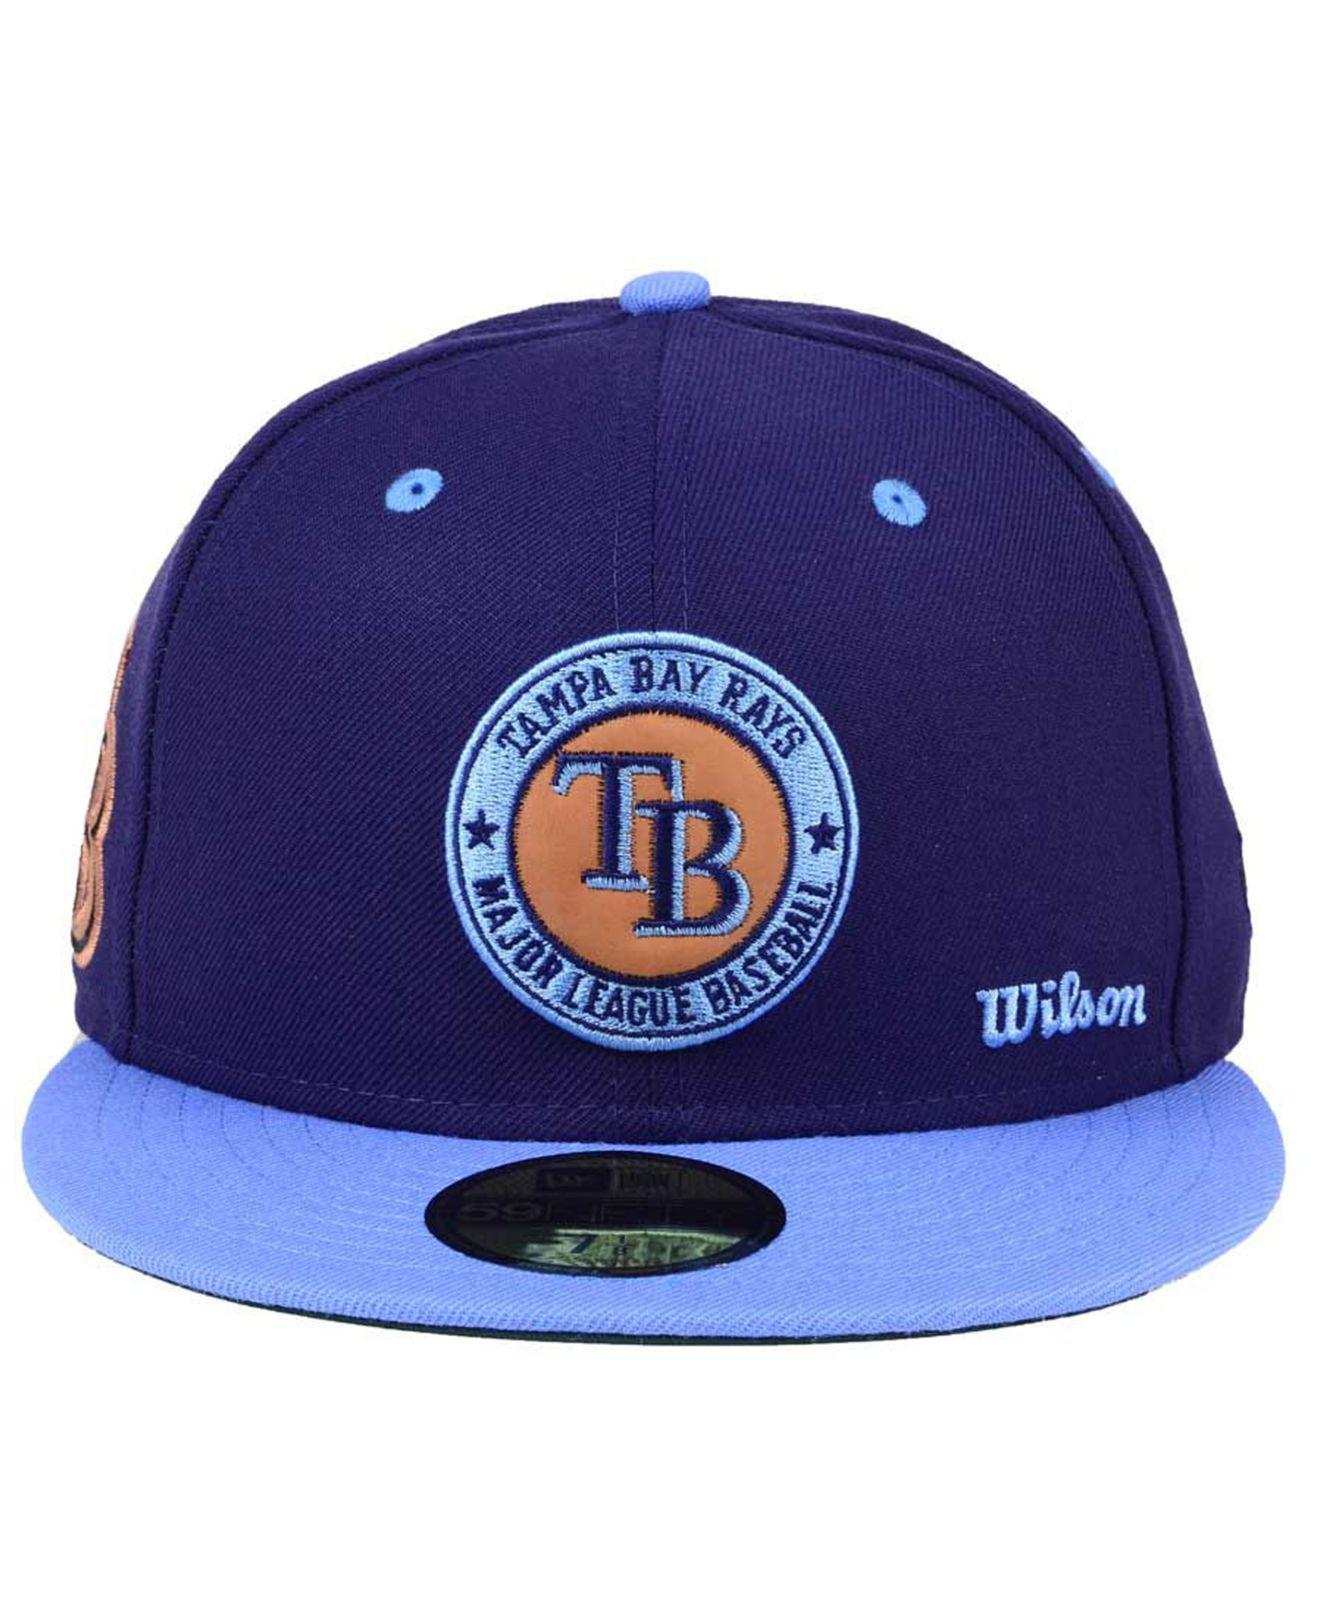 wholesale dealer 6edf3 f65b8 ... inexpensive lyst ktz x wilson circle patch 59fifty cap in blue for men  b4526 3091b